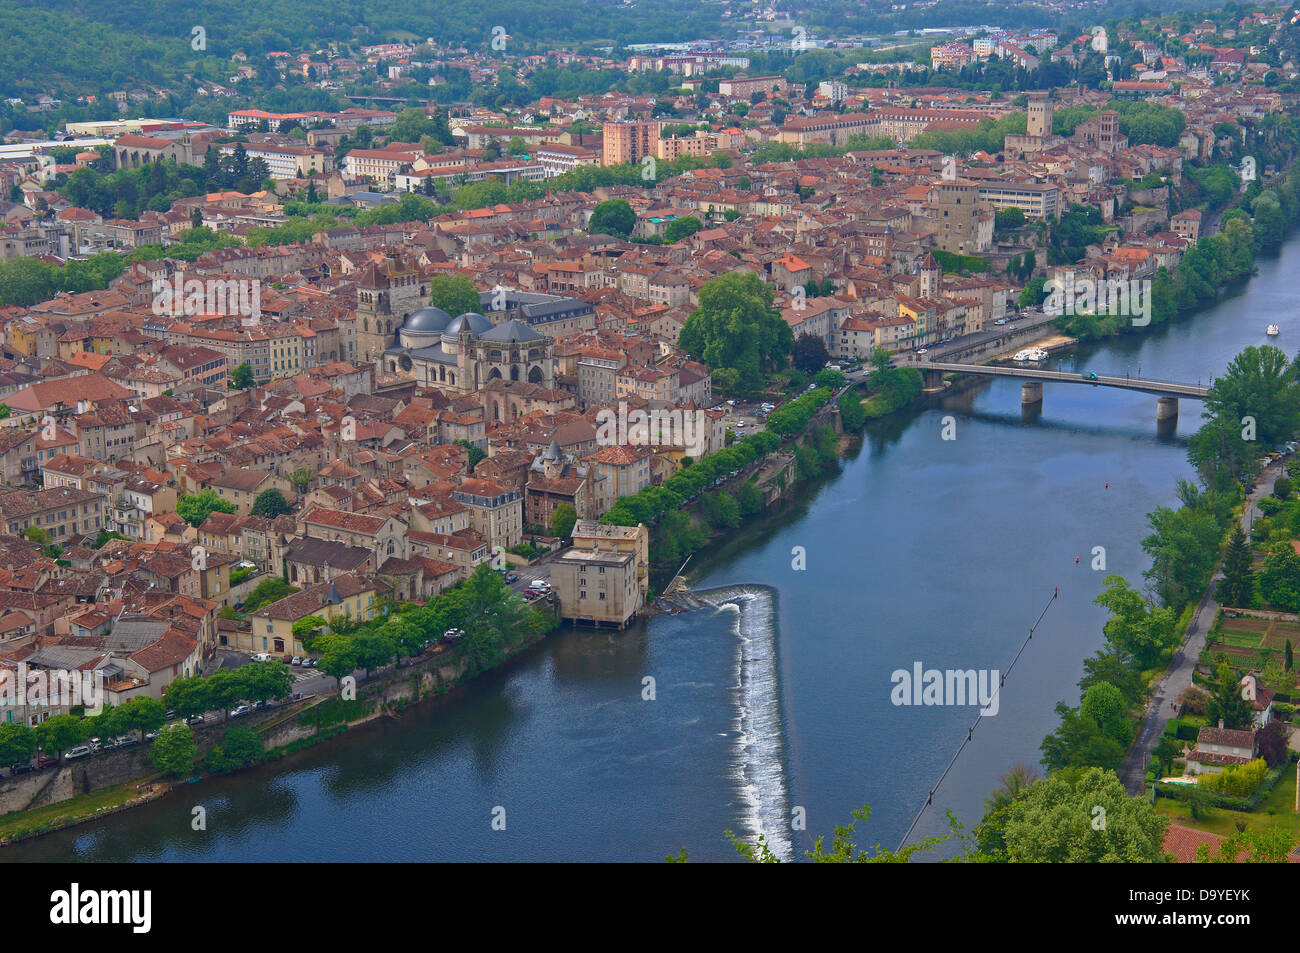 Cahors, Lot River, Lot departament, Quercy, Via Podiensis, Way of St James, France. Stock Photo